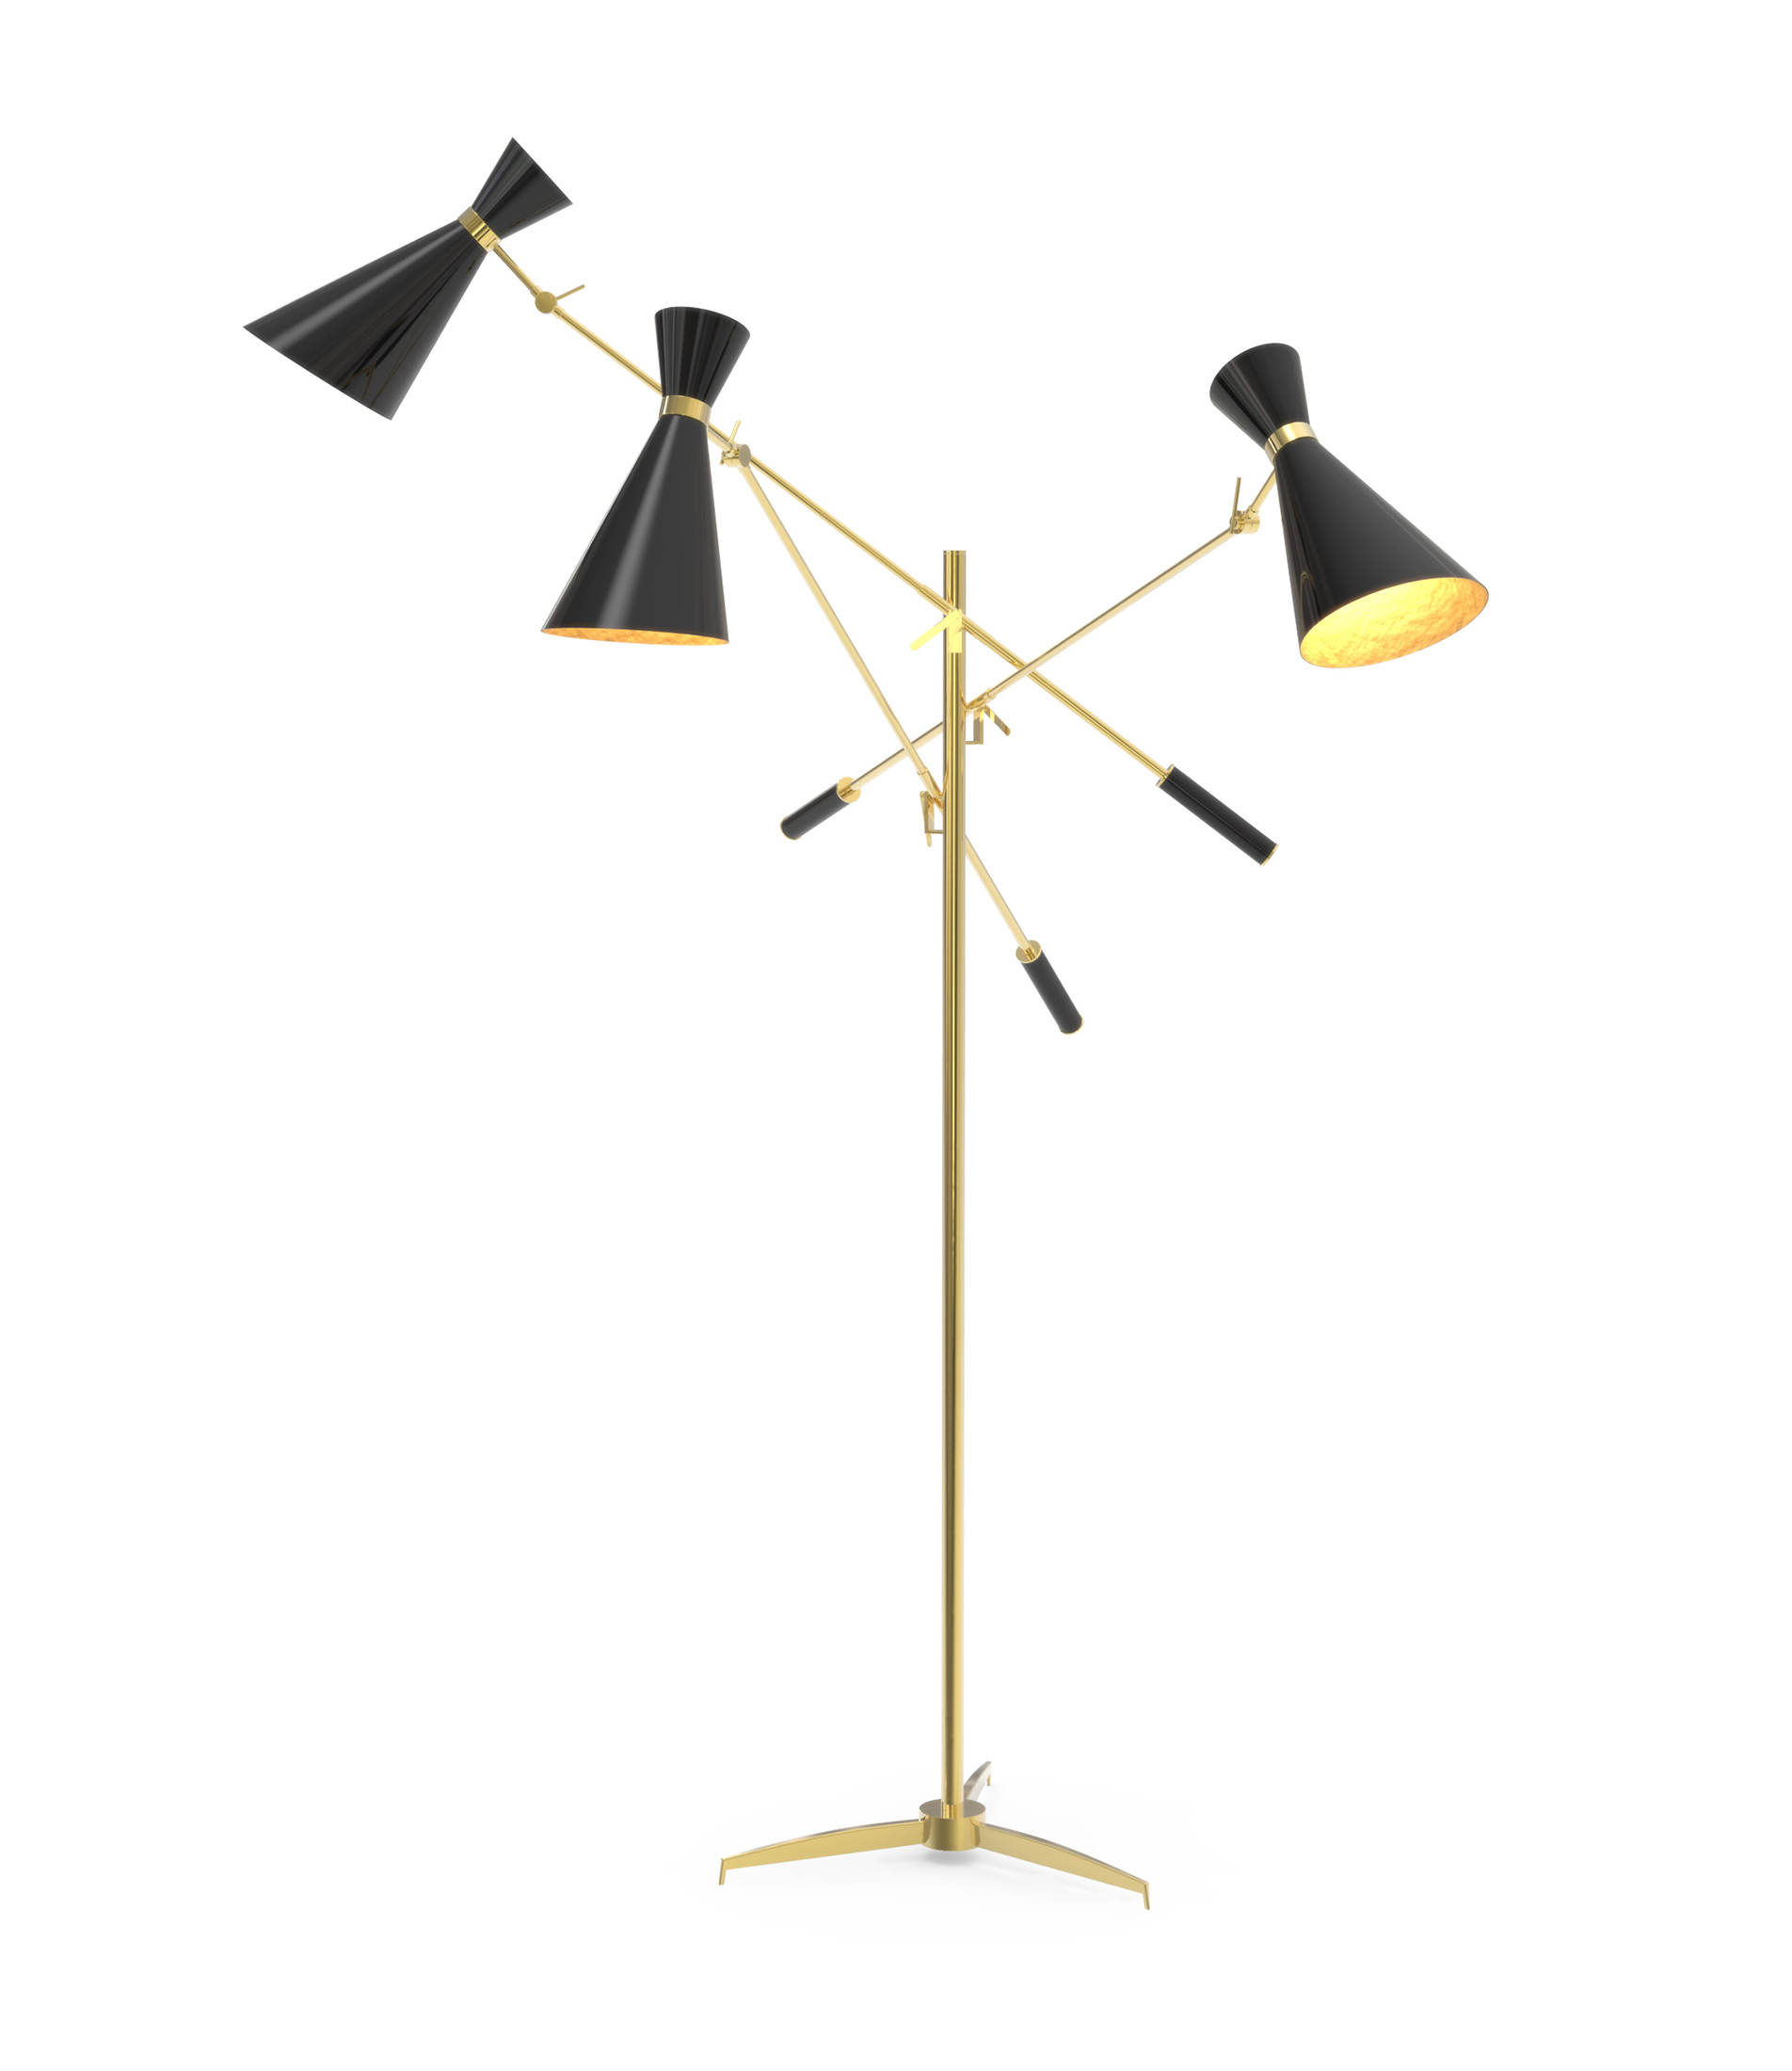 Bright Ideas: An Adjustable 3 Light Floor Lamp That You'll